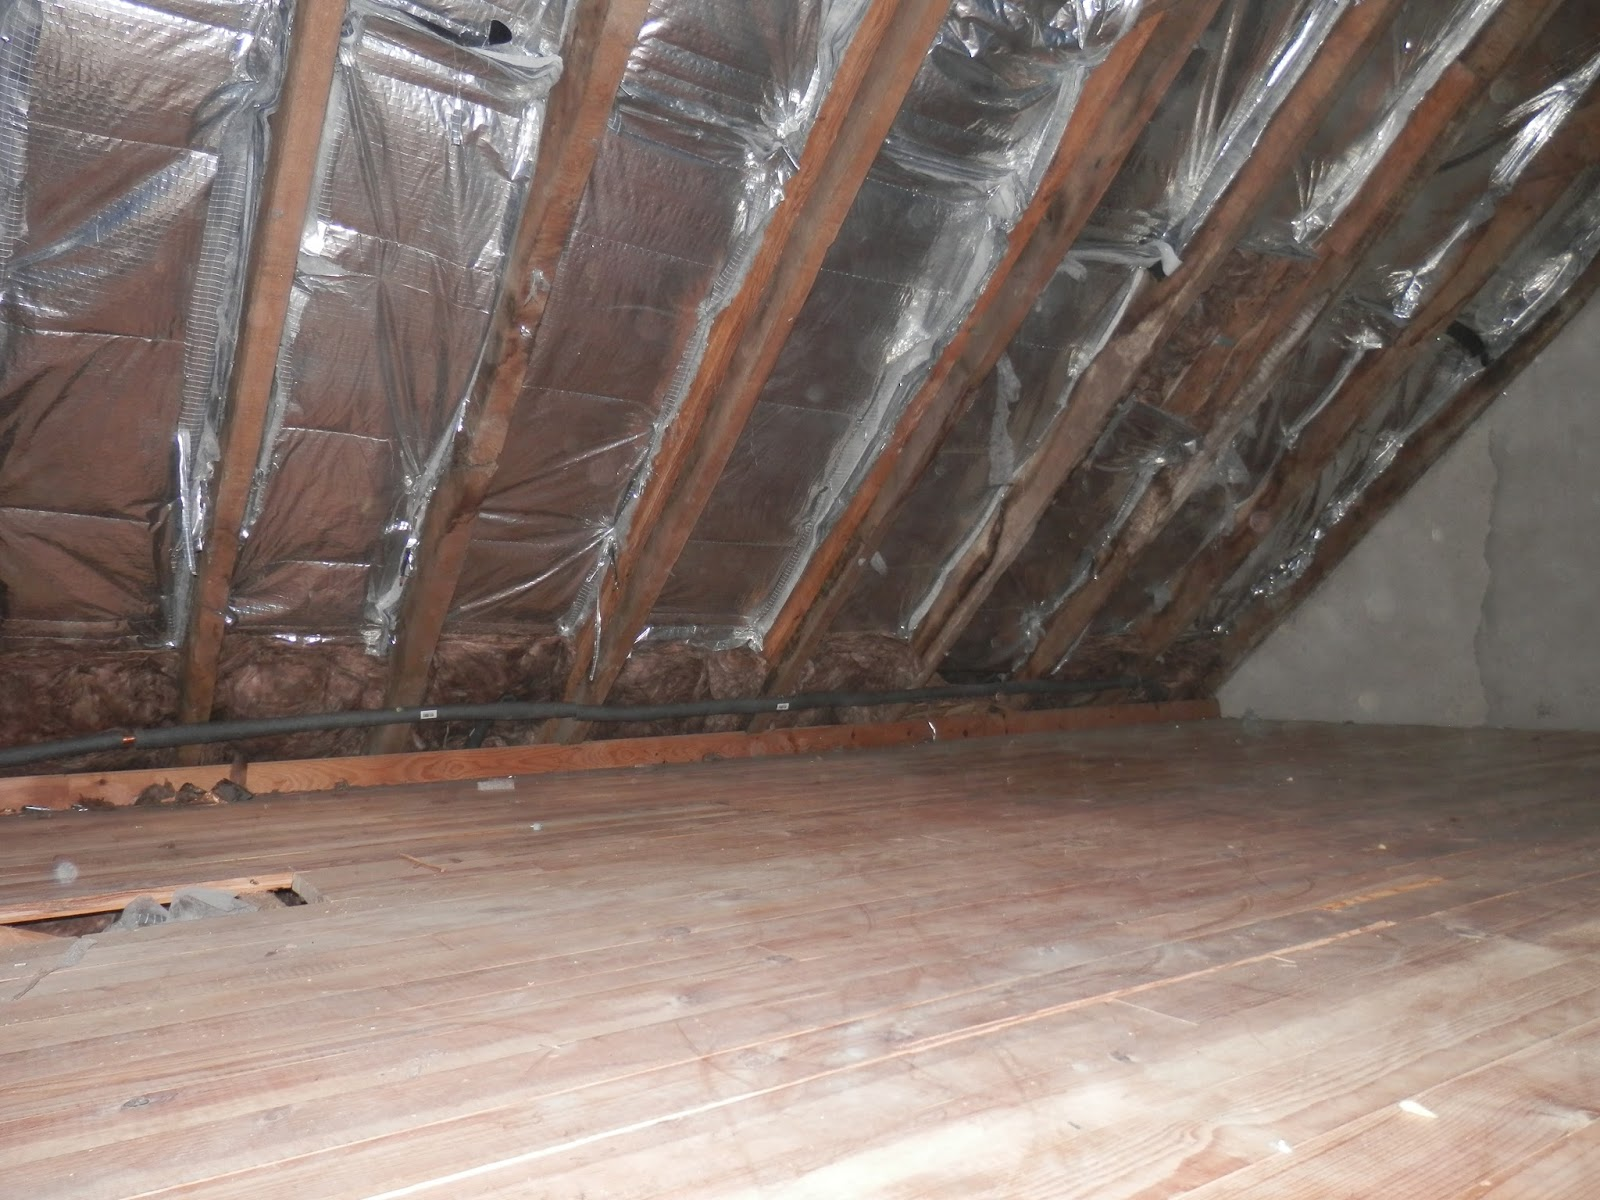 He also adds more insulation under the floorboards and packs insulation into the eaves. & Renovation of a Derelict House in Brittany France: Renovation ...